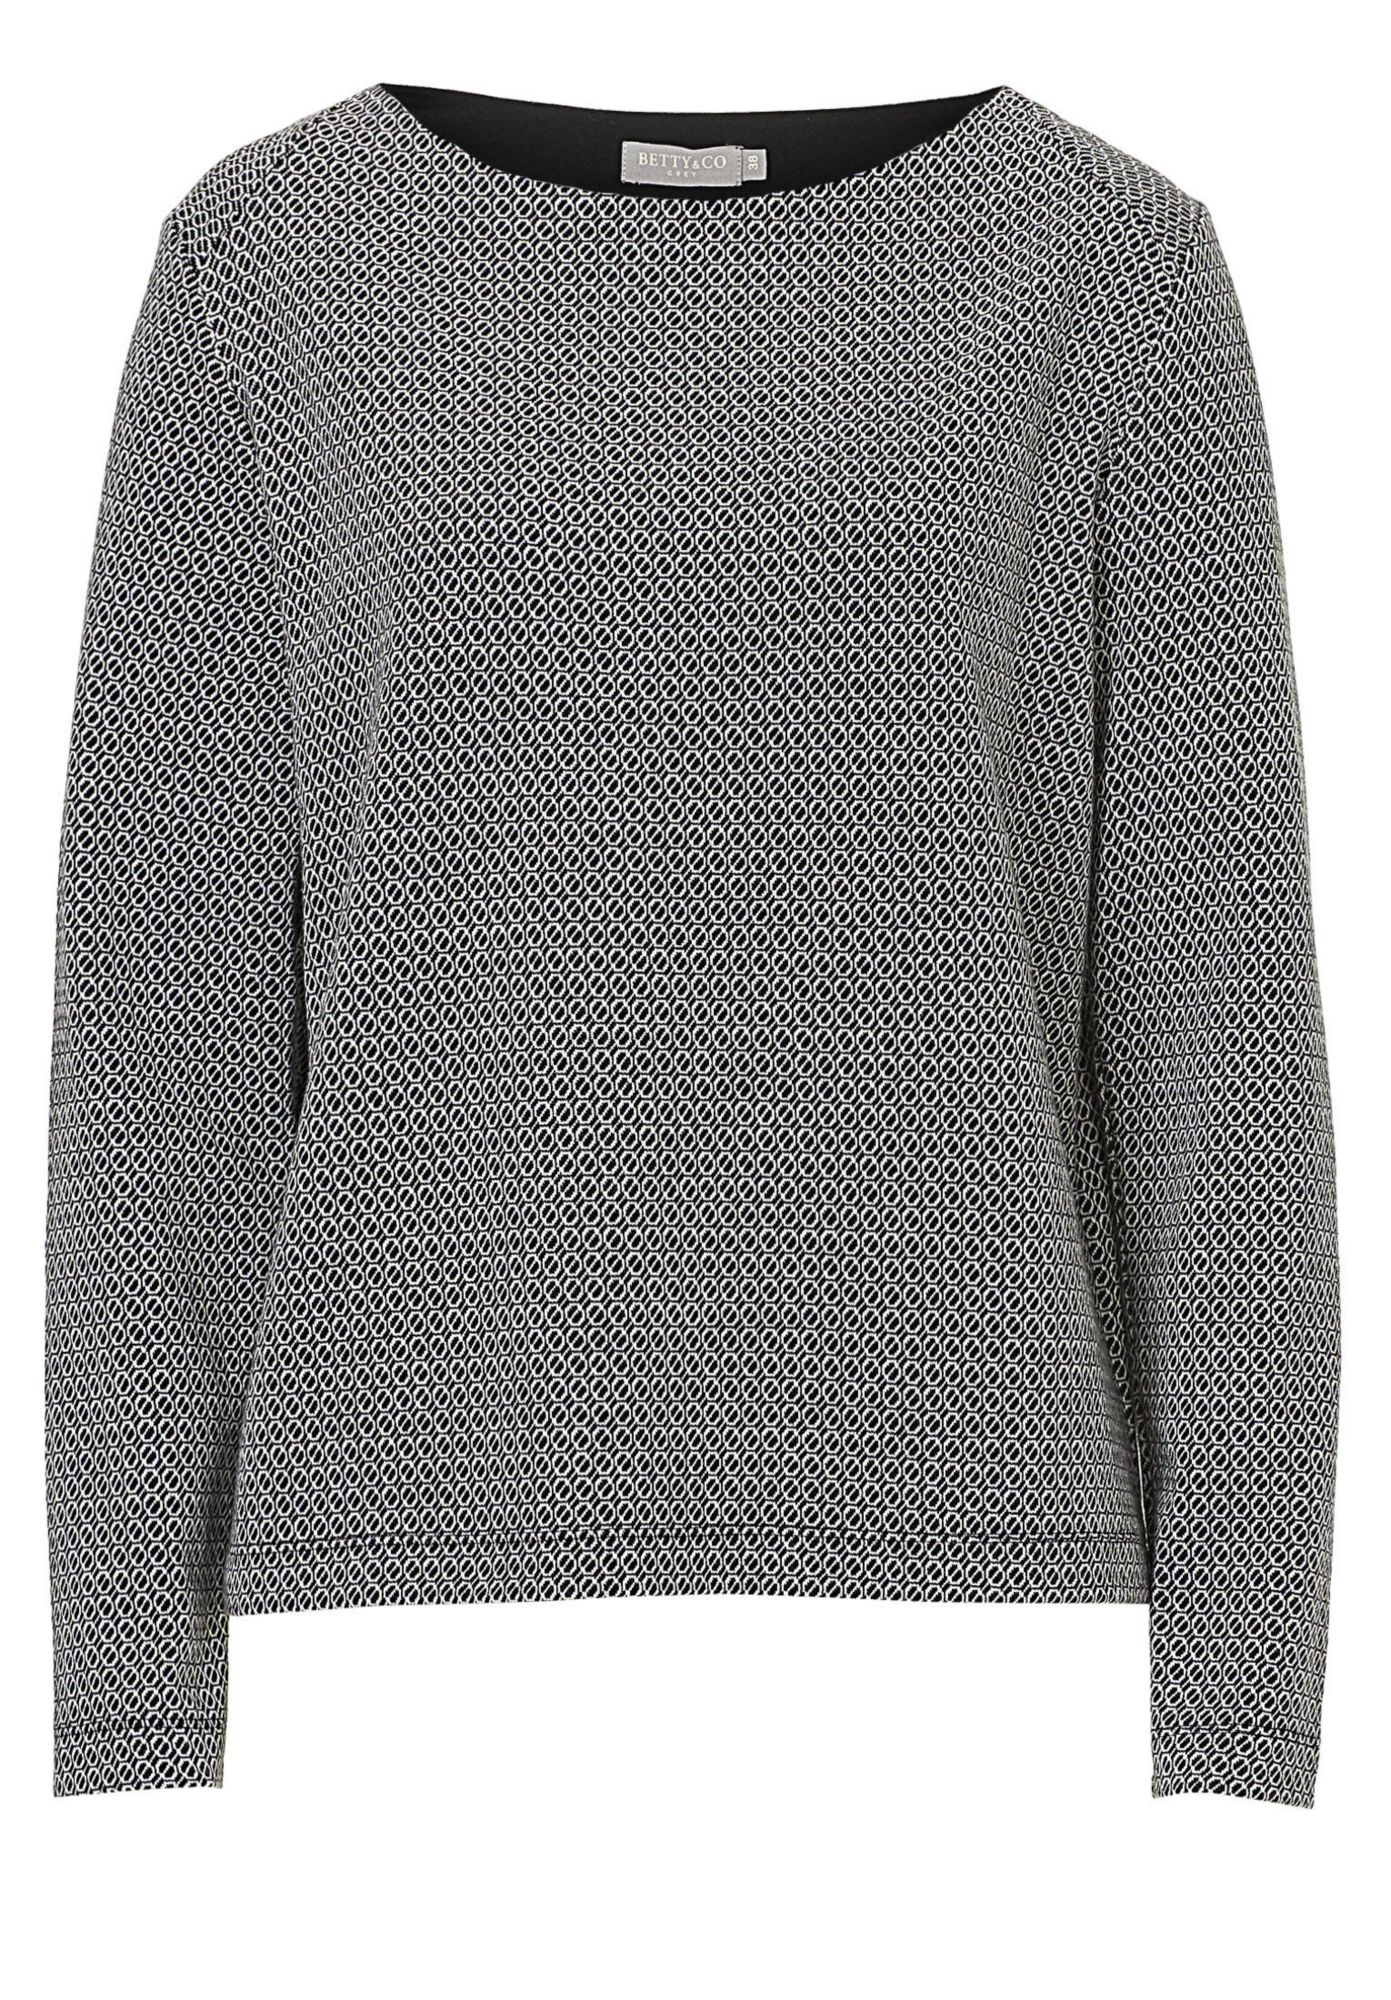 BETTYCO Betty&Co Strickpullover